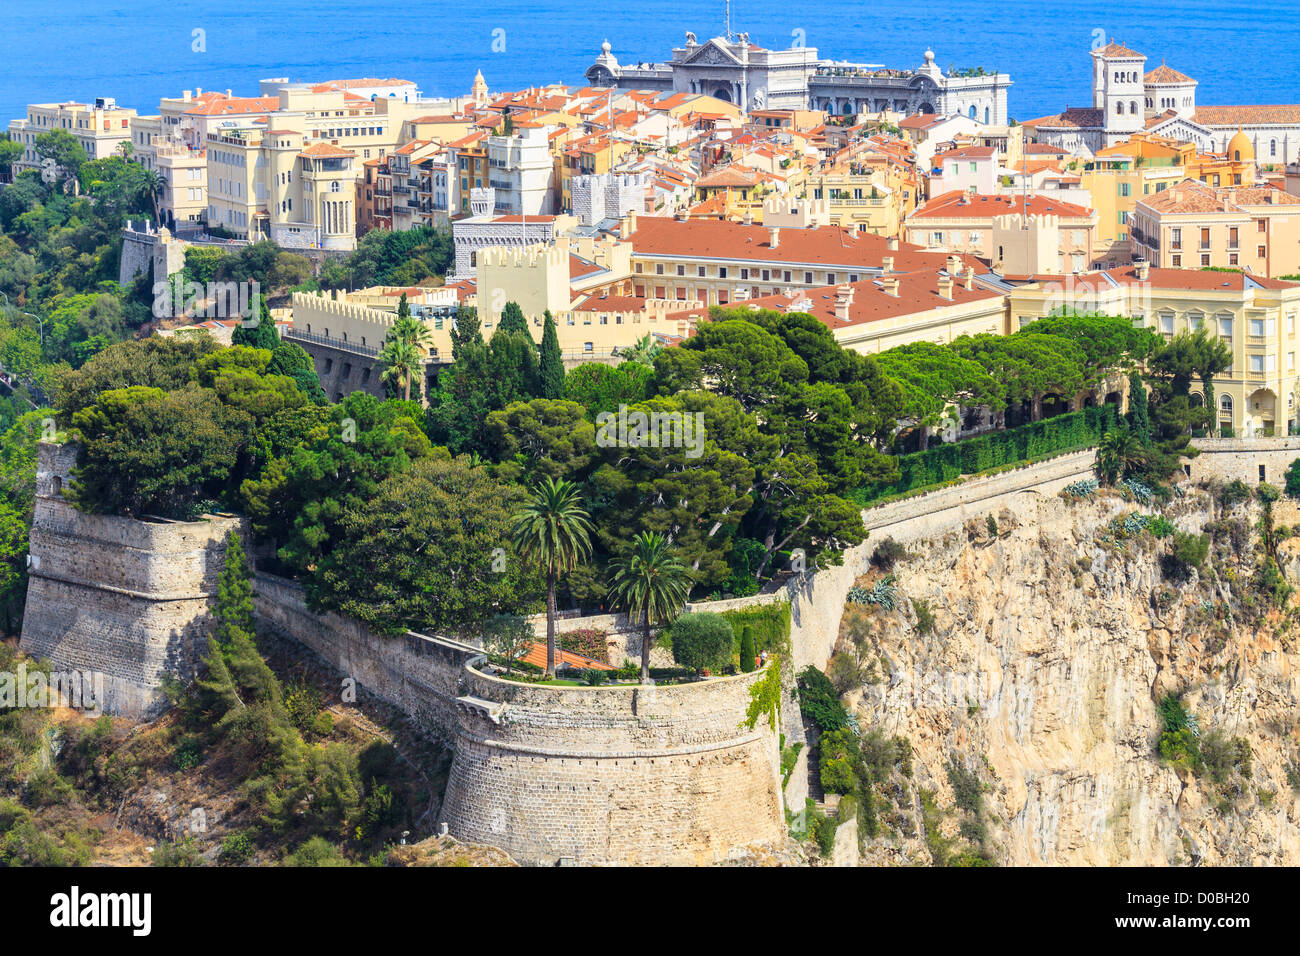 Panoramic view of Monaco with palace (Chateau Grimaldi), old town, cathedral and Oceanography museum - Stock Image